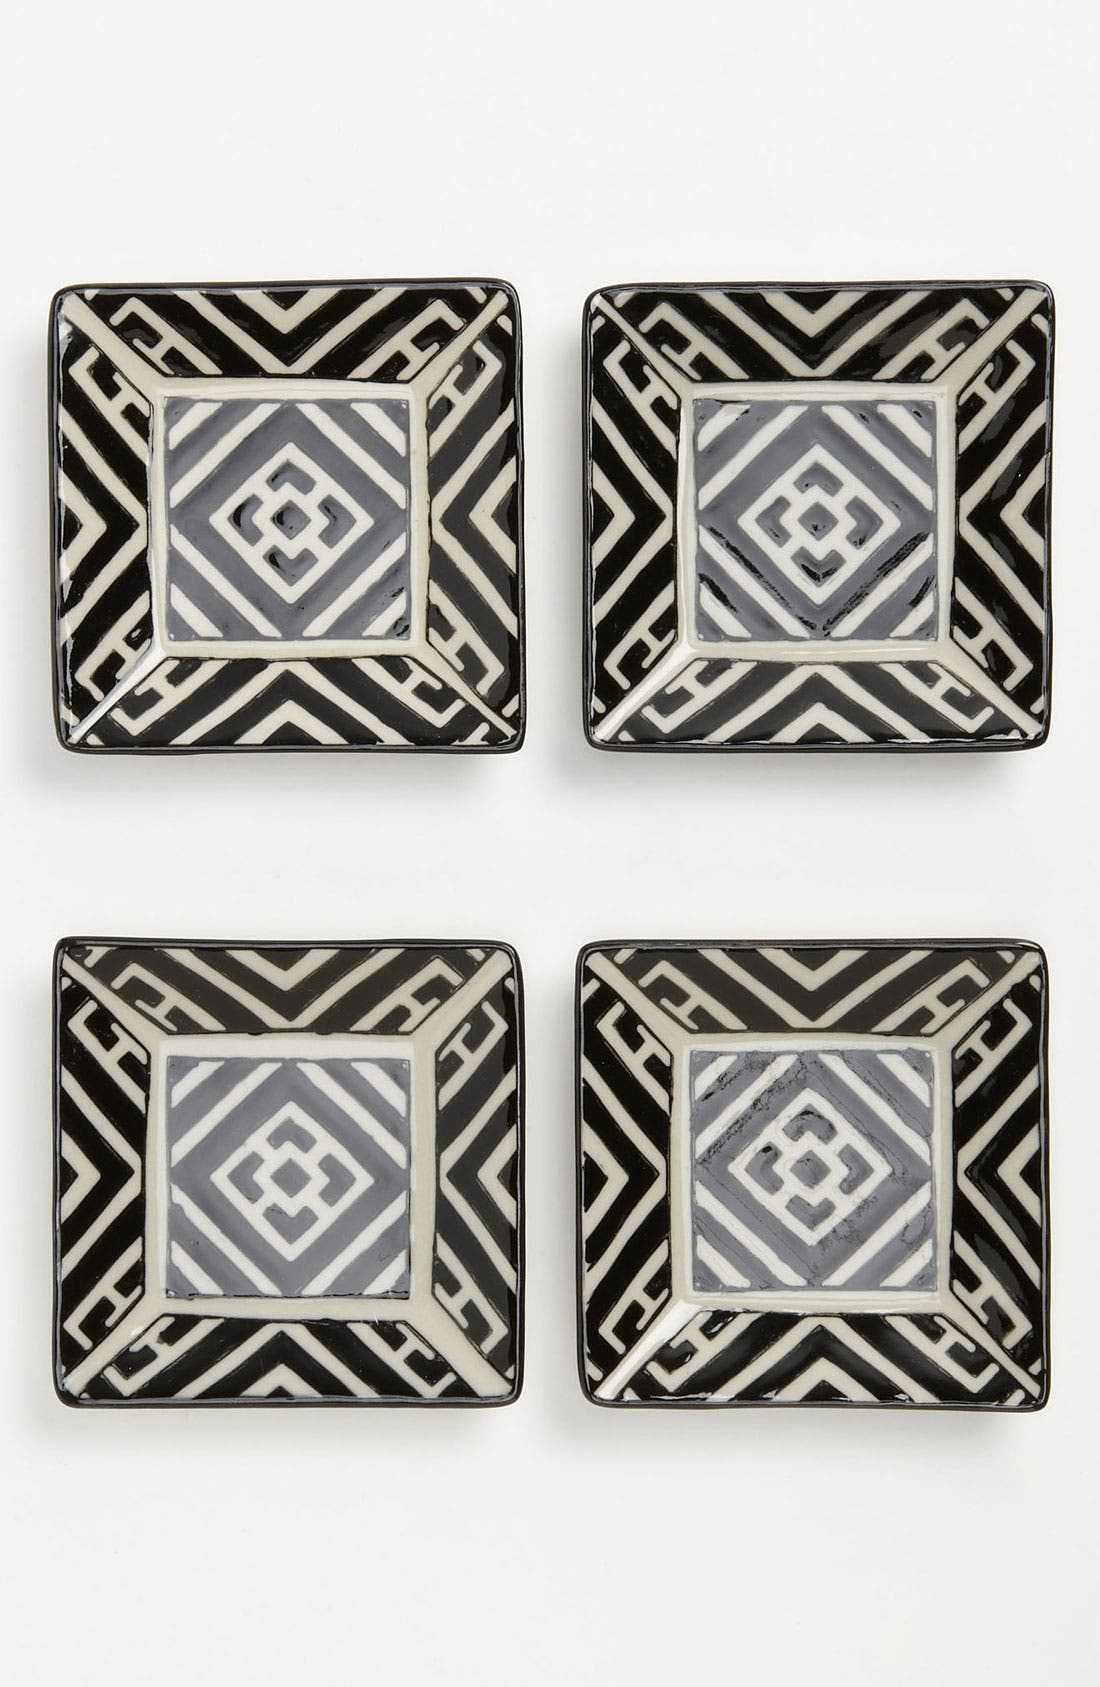 Alternate Image 1 Selected - Black & White Appetizer Plates (Set of 4)